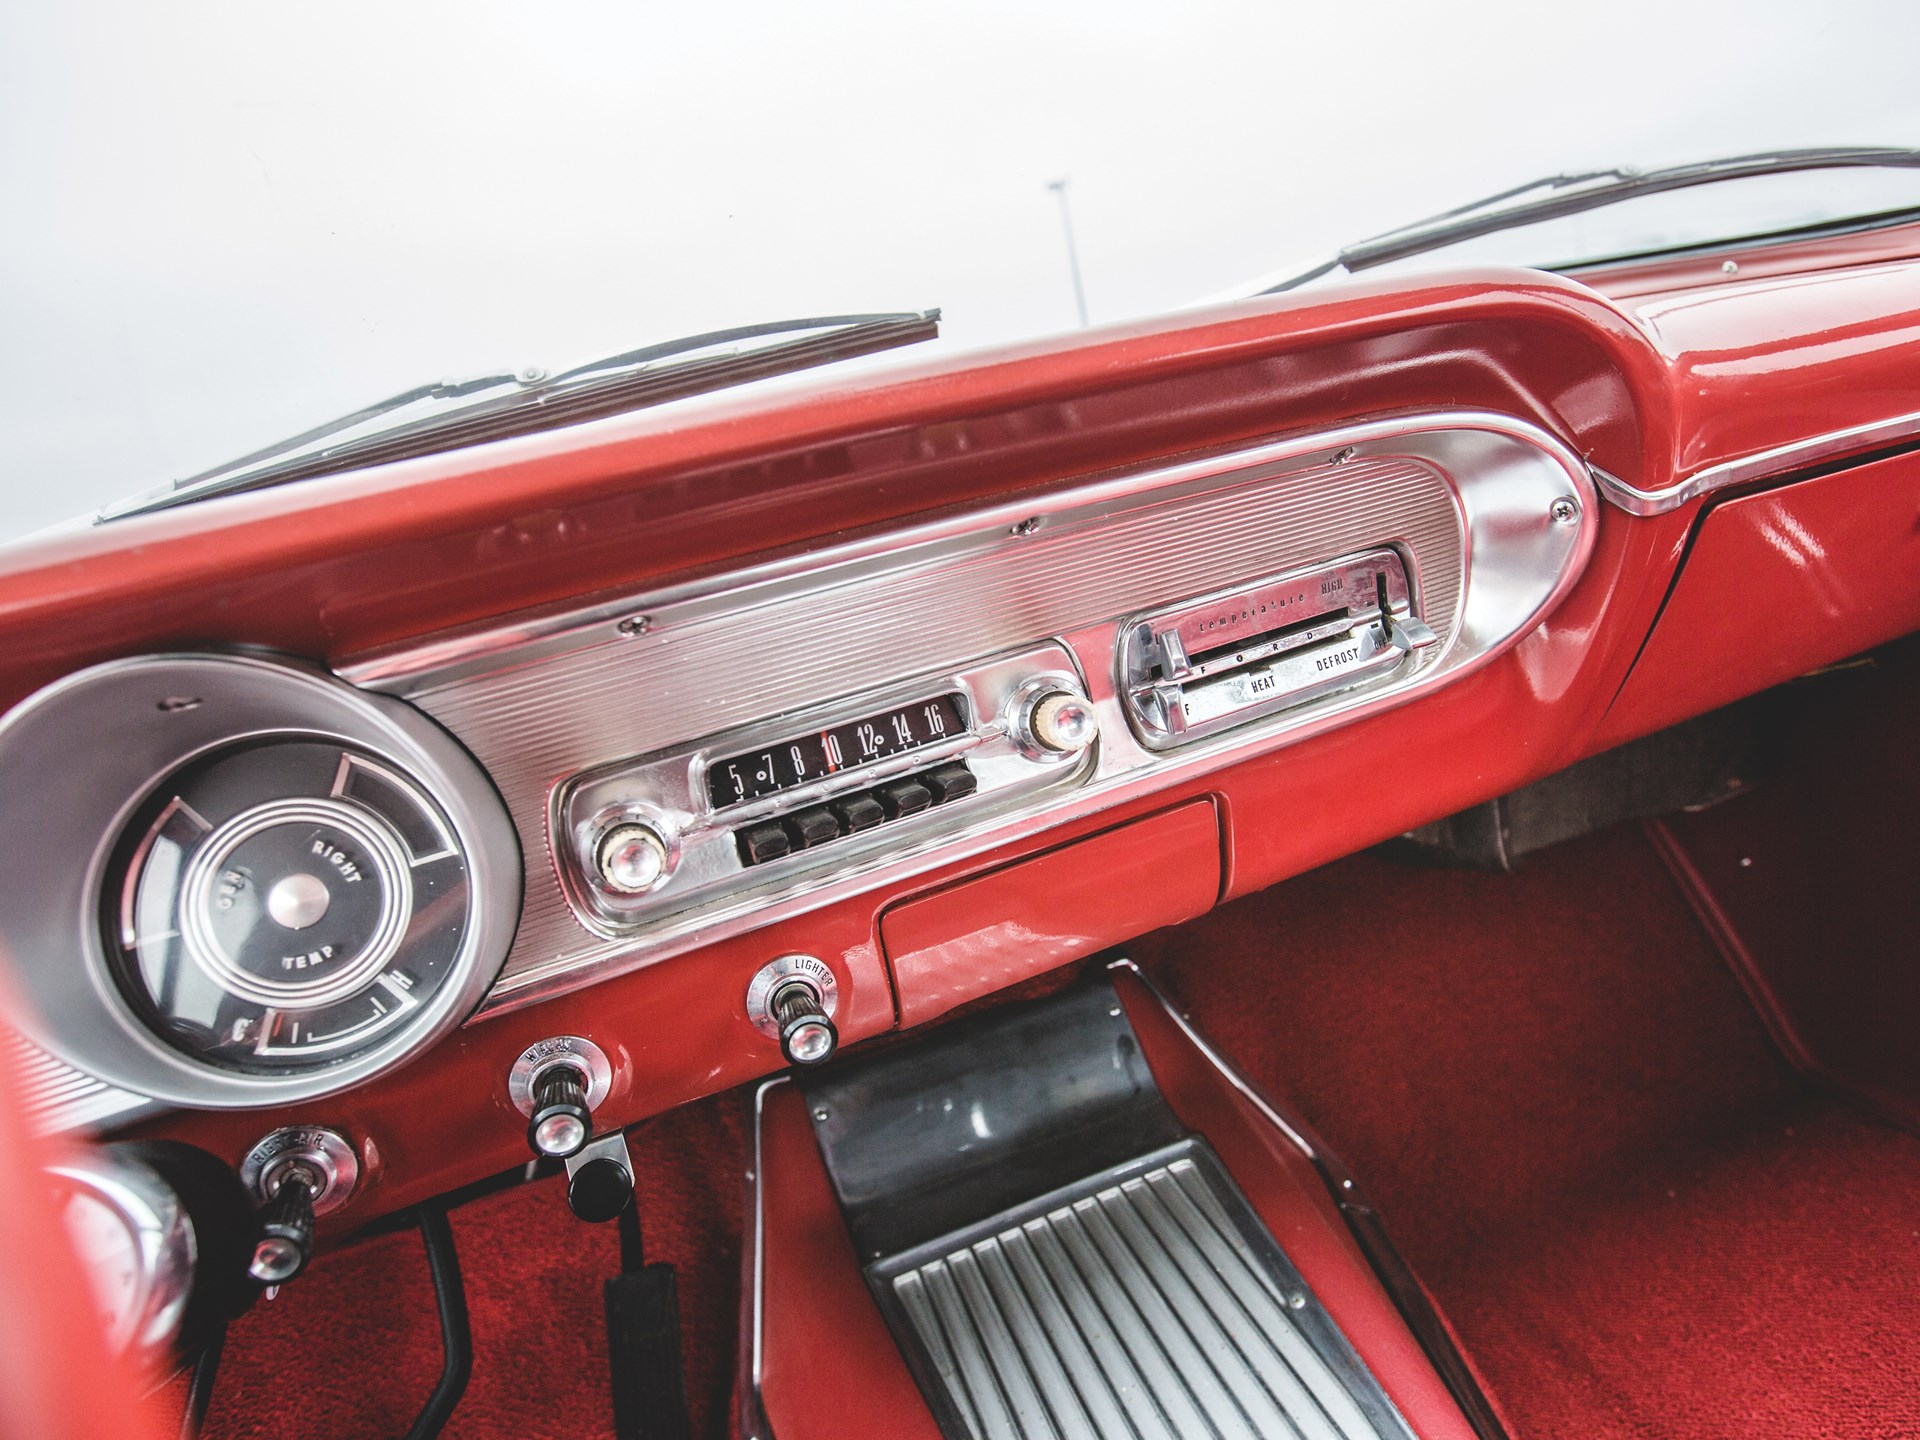 RM Sotheby's - 1963 Ford Fairlane 500 Sports Coupe | Auburn